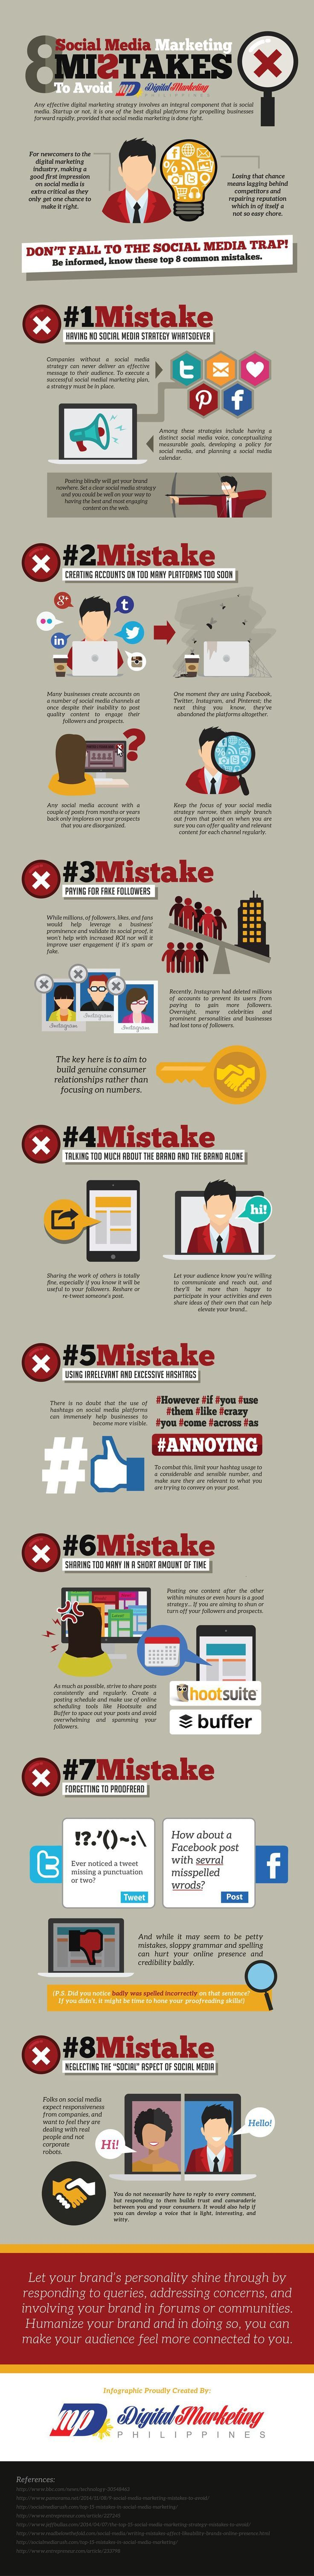 Social media mistakes here are the 10 that you should